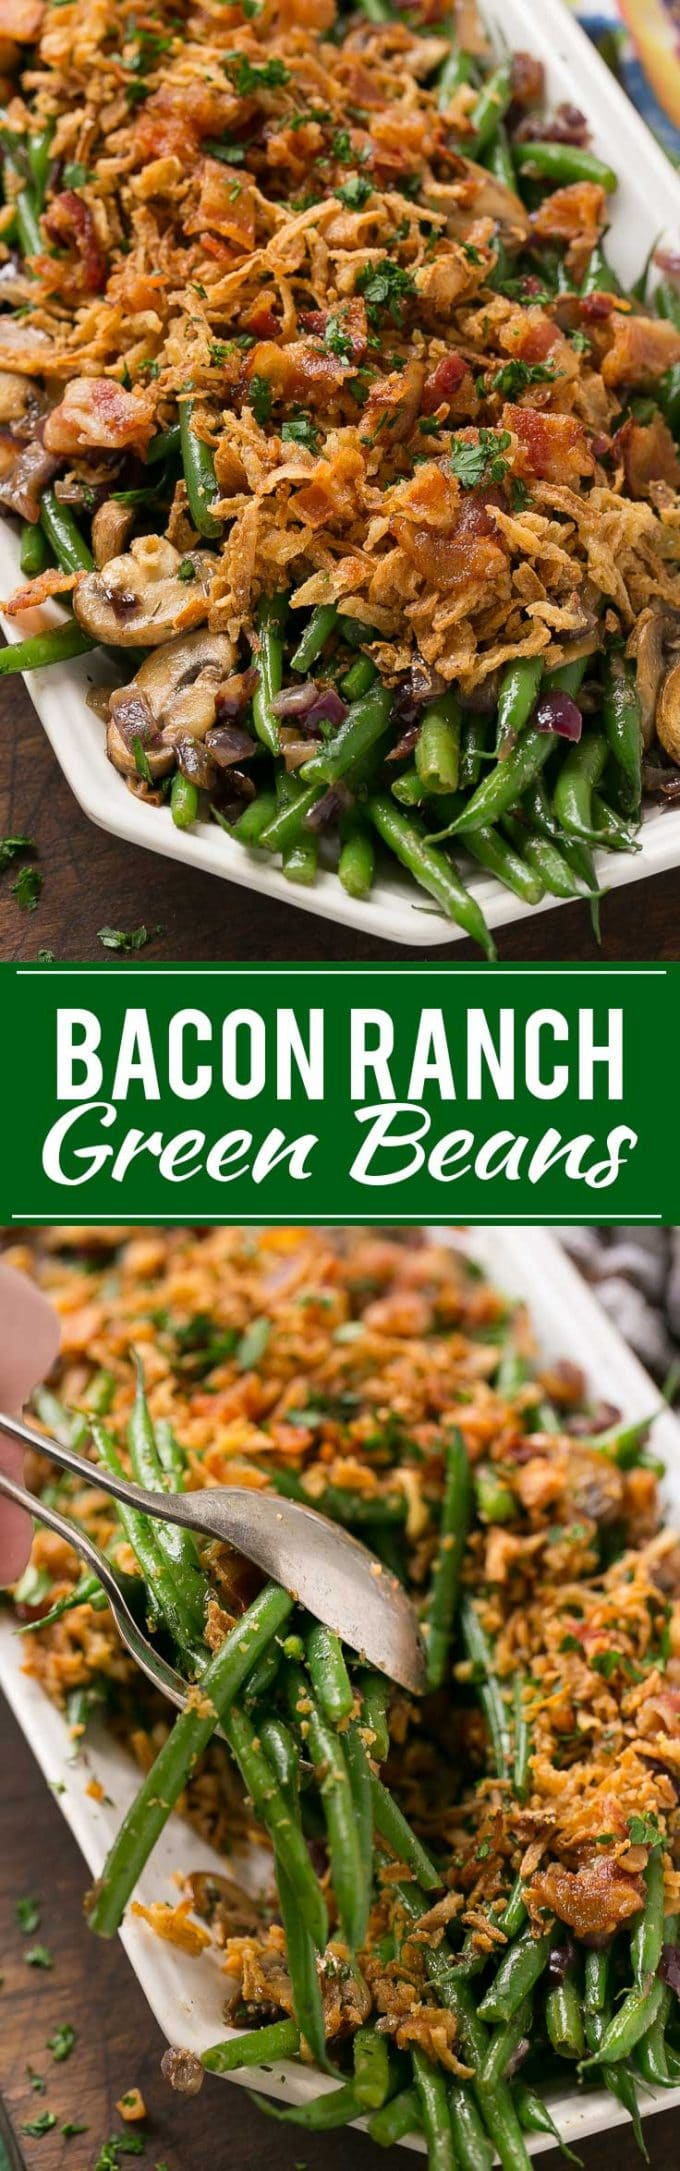 Bacon Ranch Green Beans Recipe | Bacon Ranch Green Beans | Bacon Green Beans | Best Green Beans | Best Bacon Green Beans | Easy Bacon Green Beans